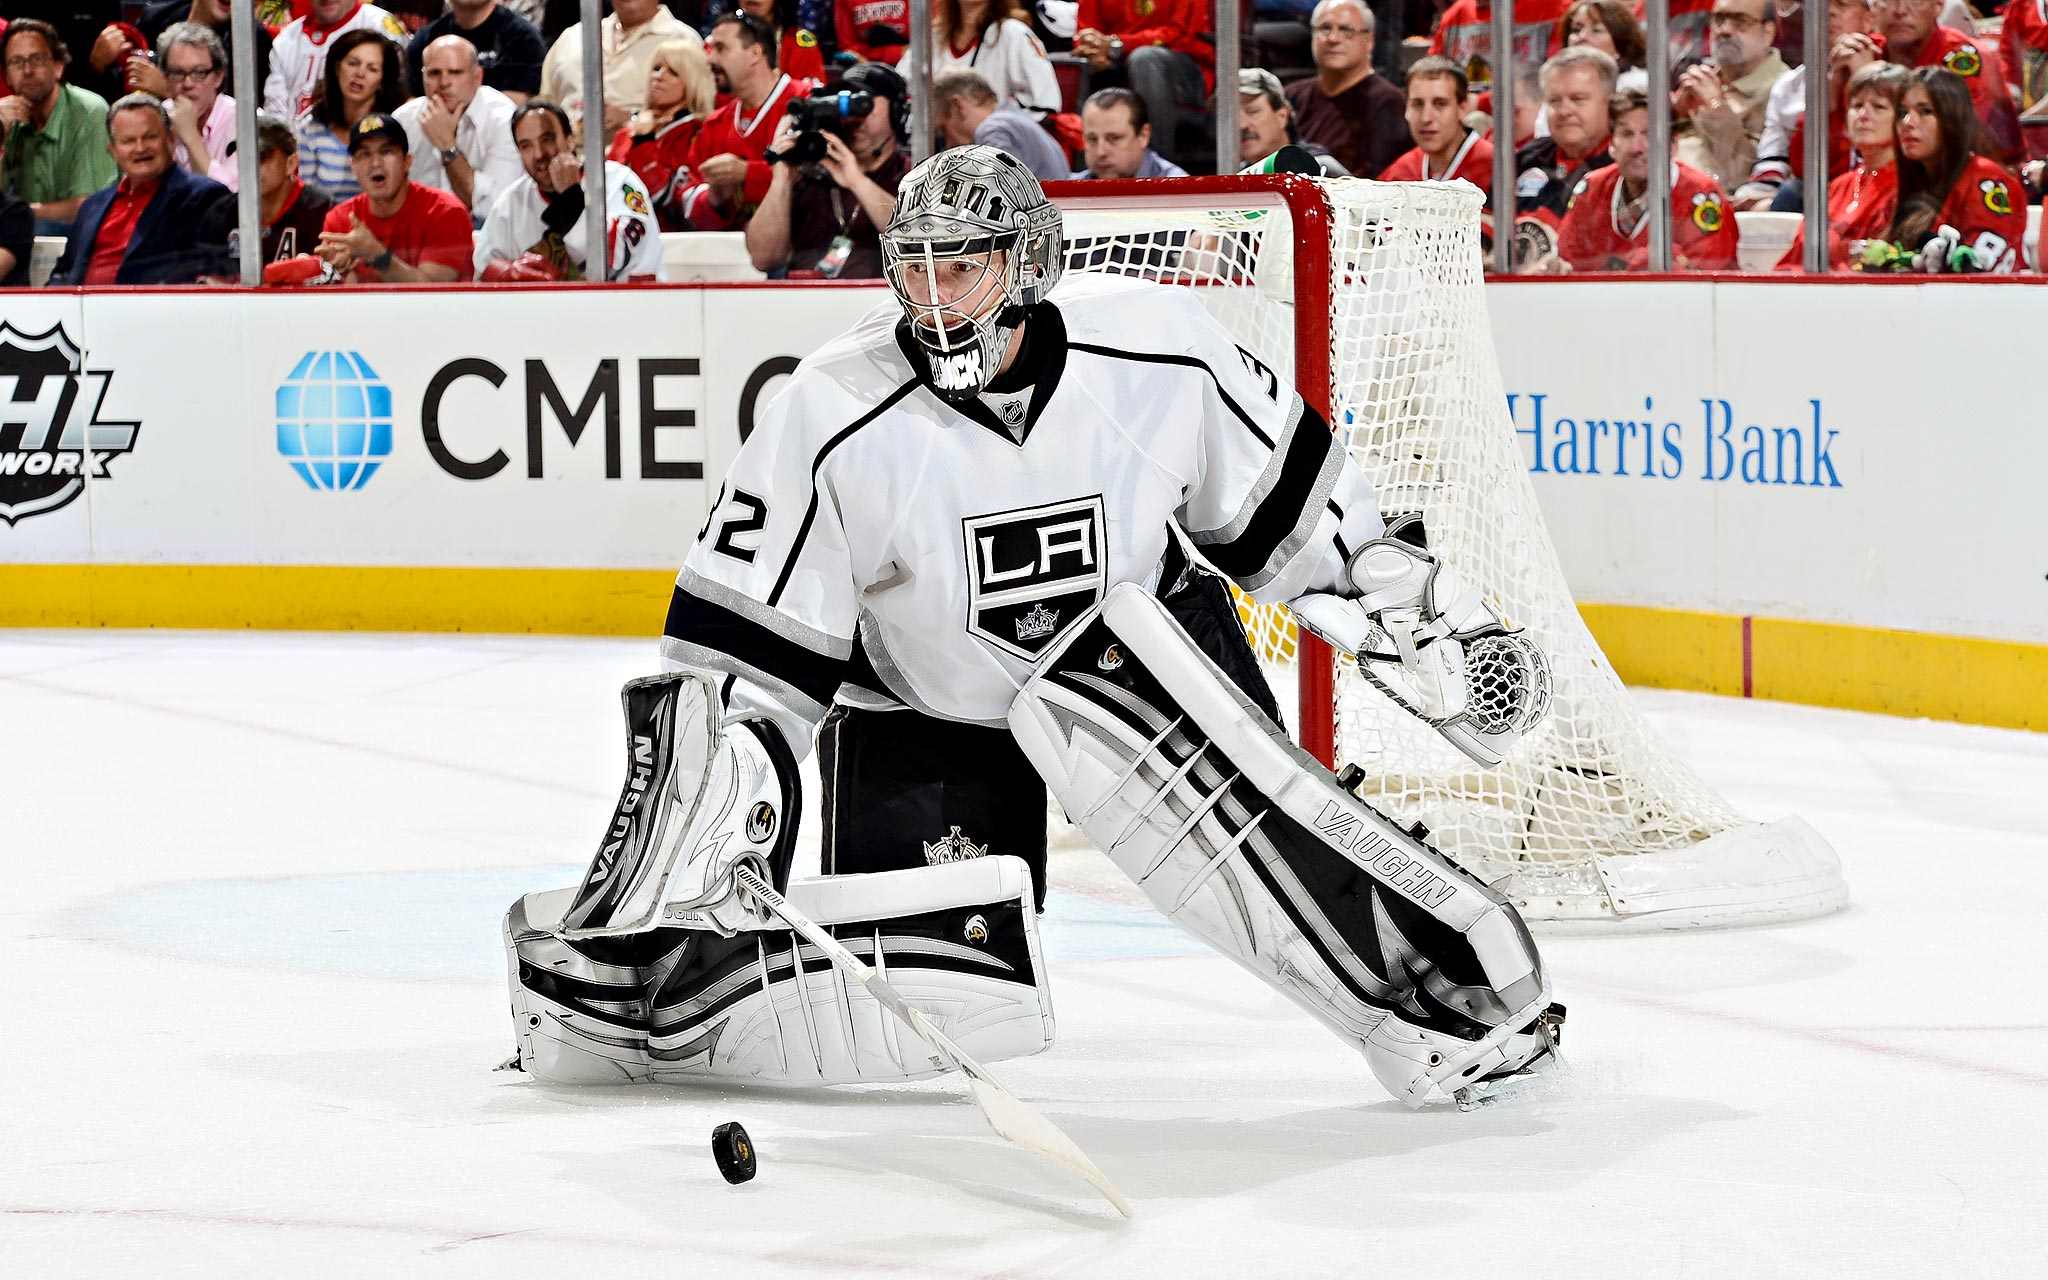 No. 9 Jonathan Quick